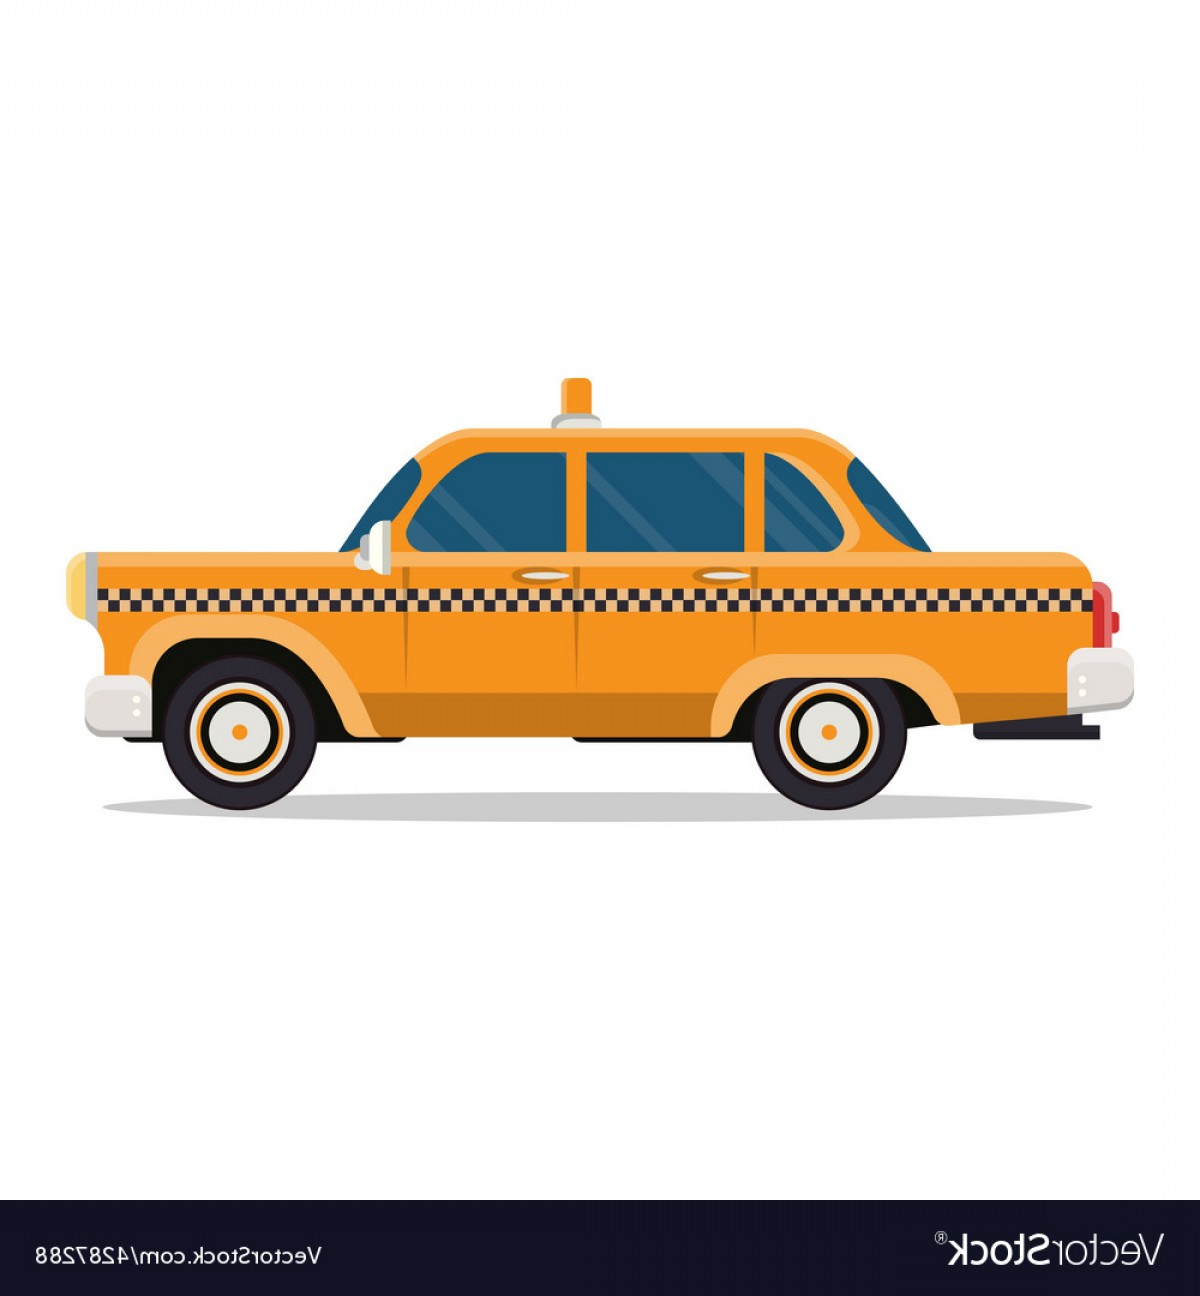 New York Taxi Cab Vector: Graphic Yellow Retro Taxi Cab On White Vector